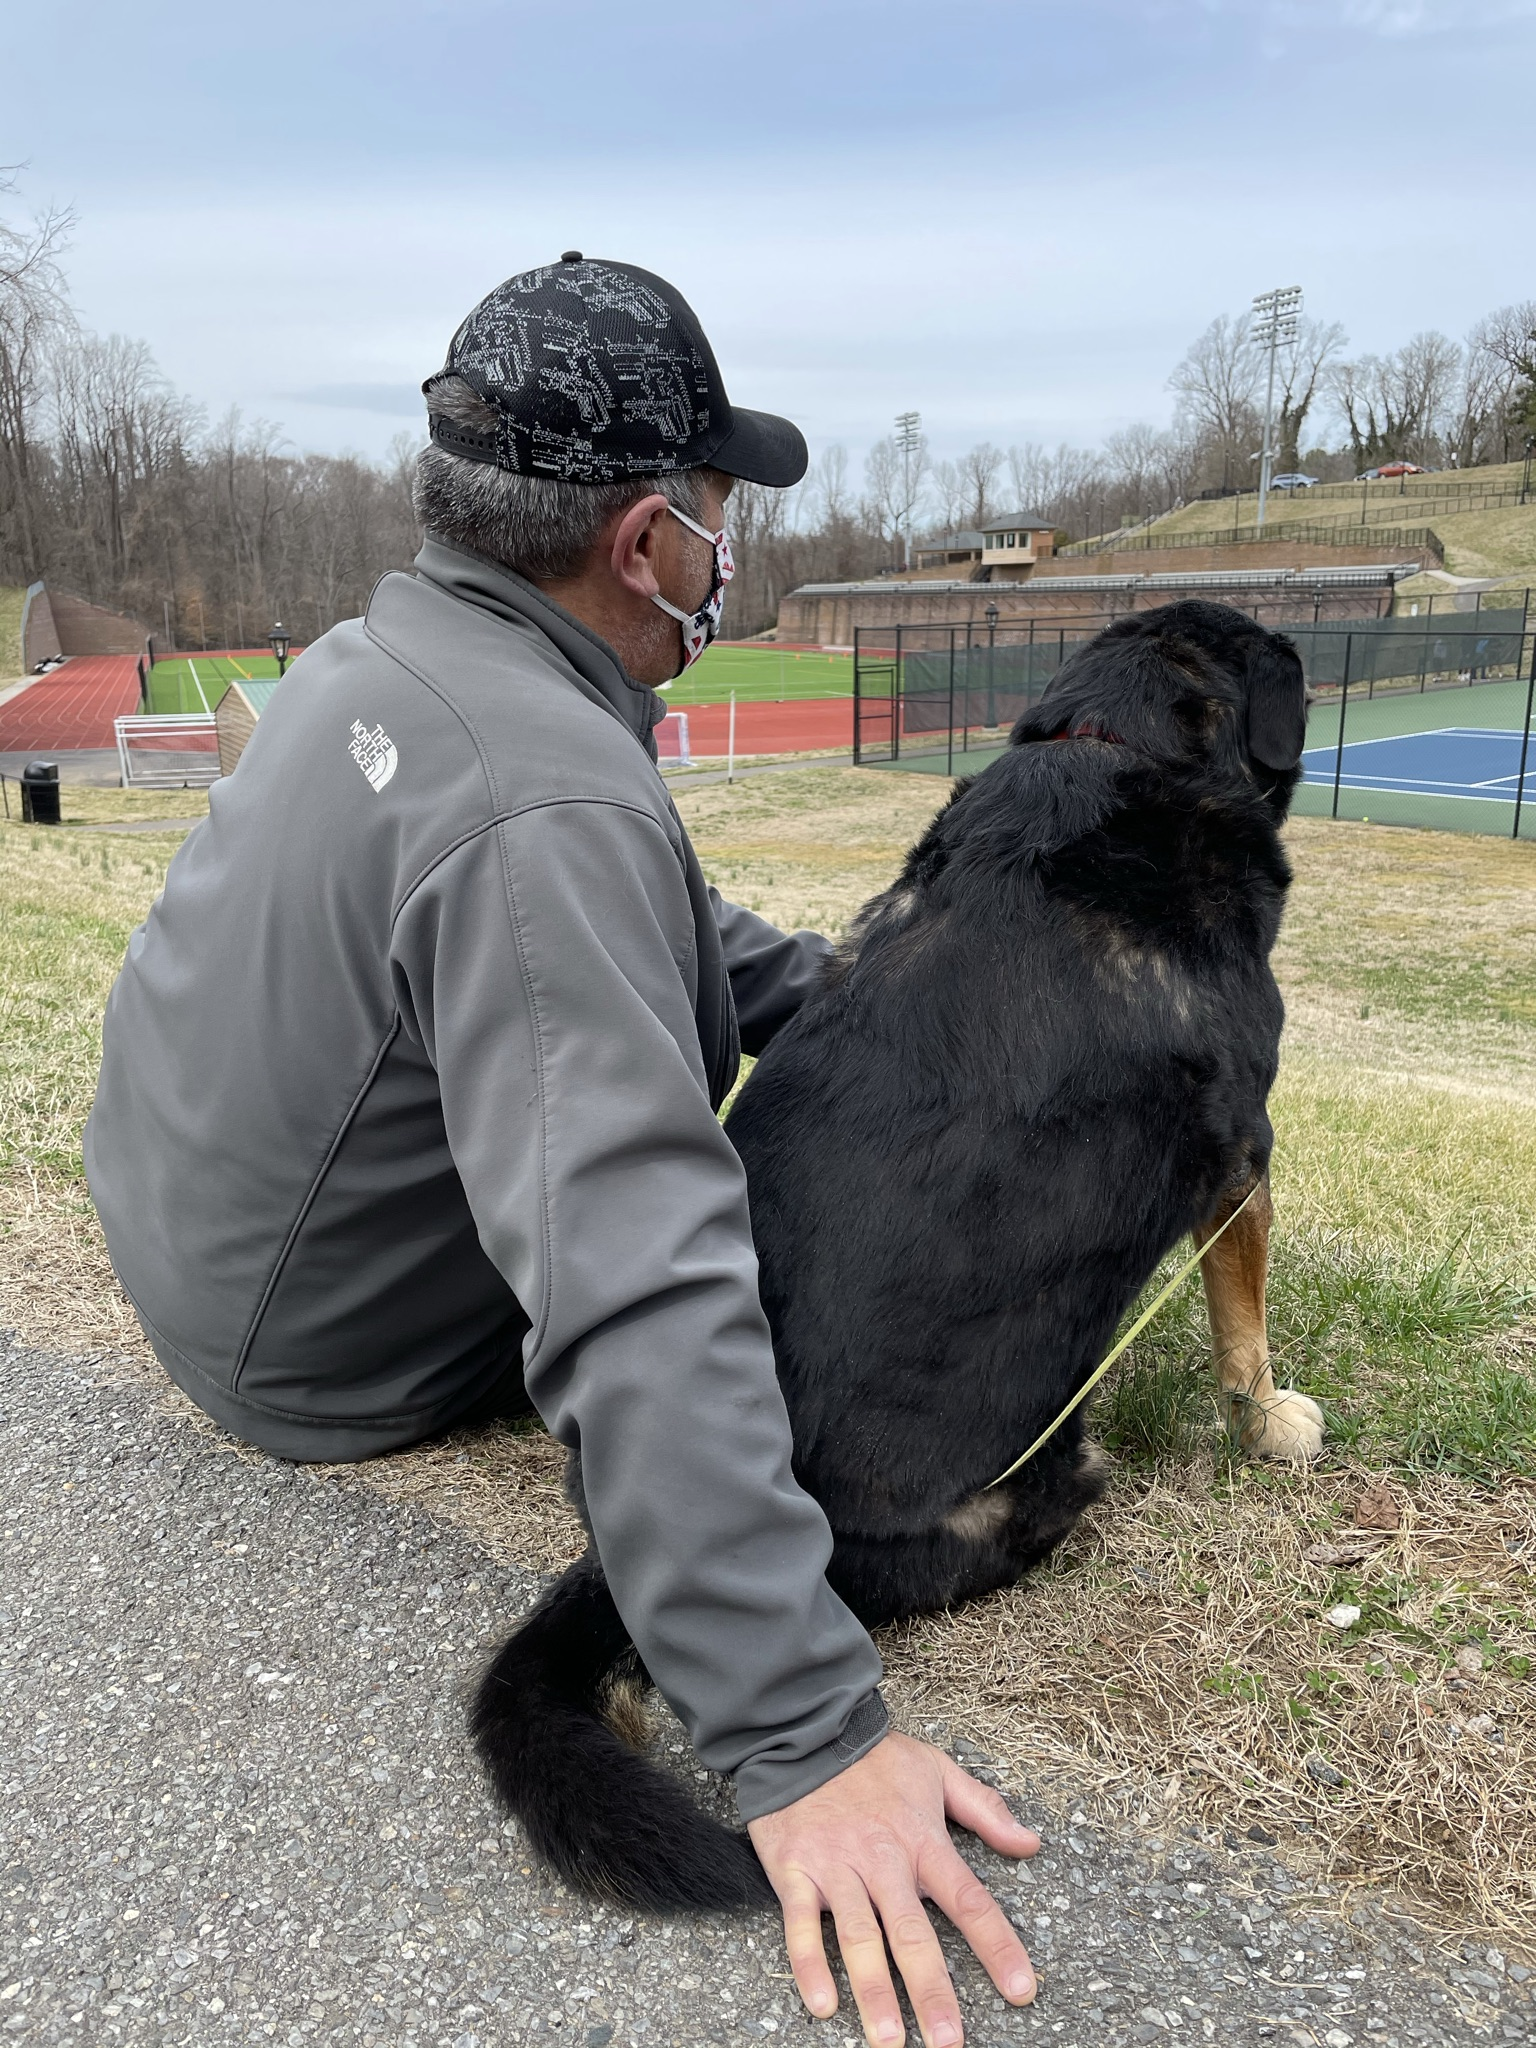 Man and dog watching tennis at Randolph College in Lynchburg, VA